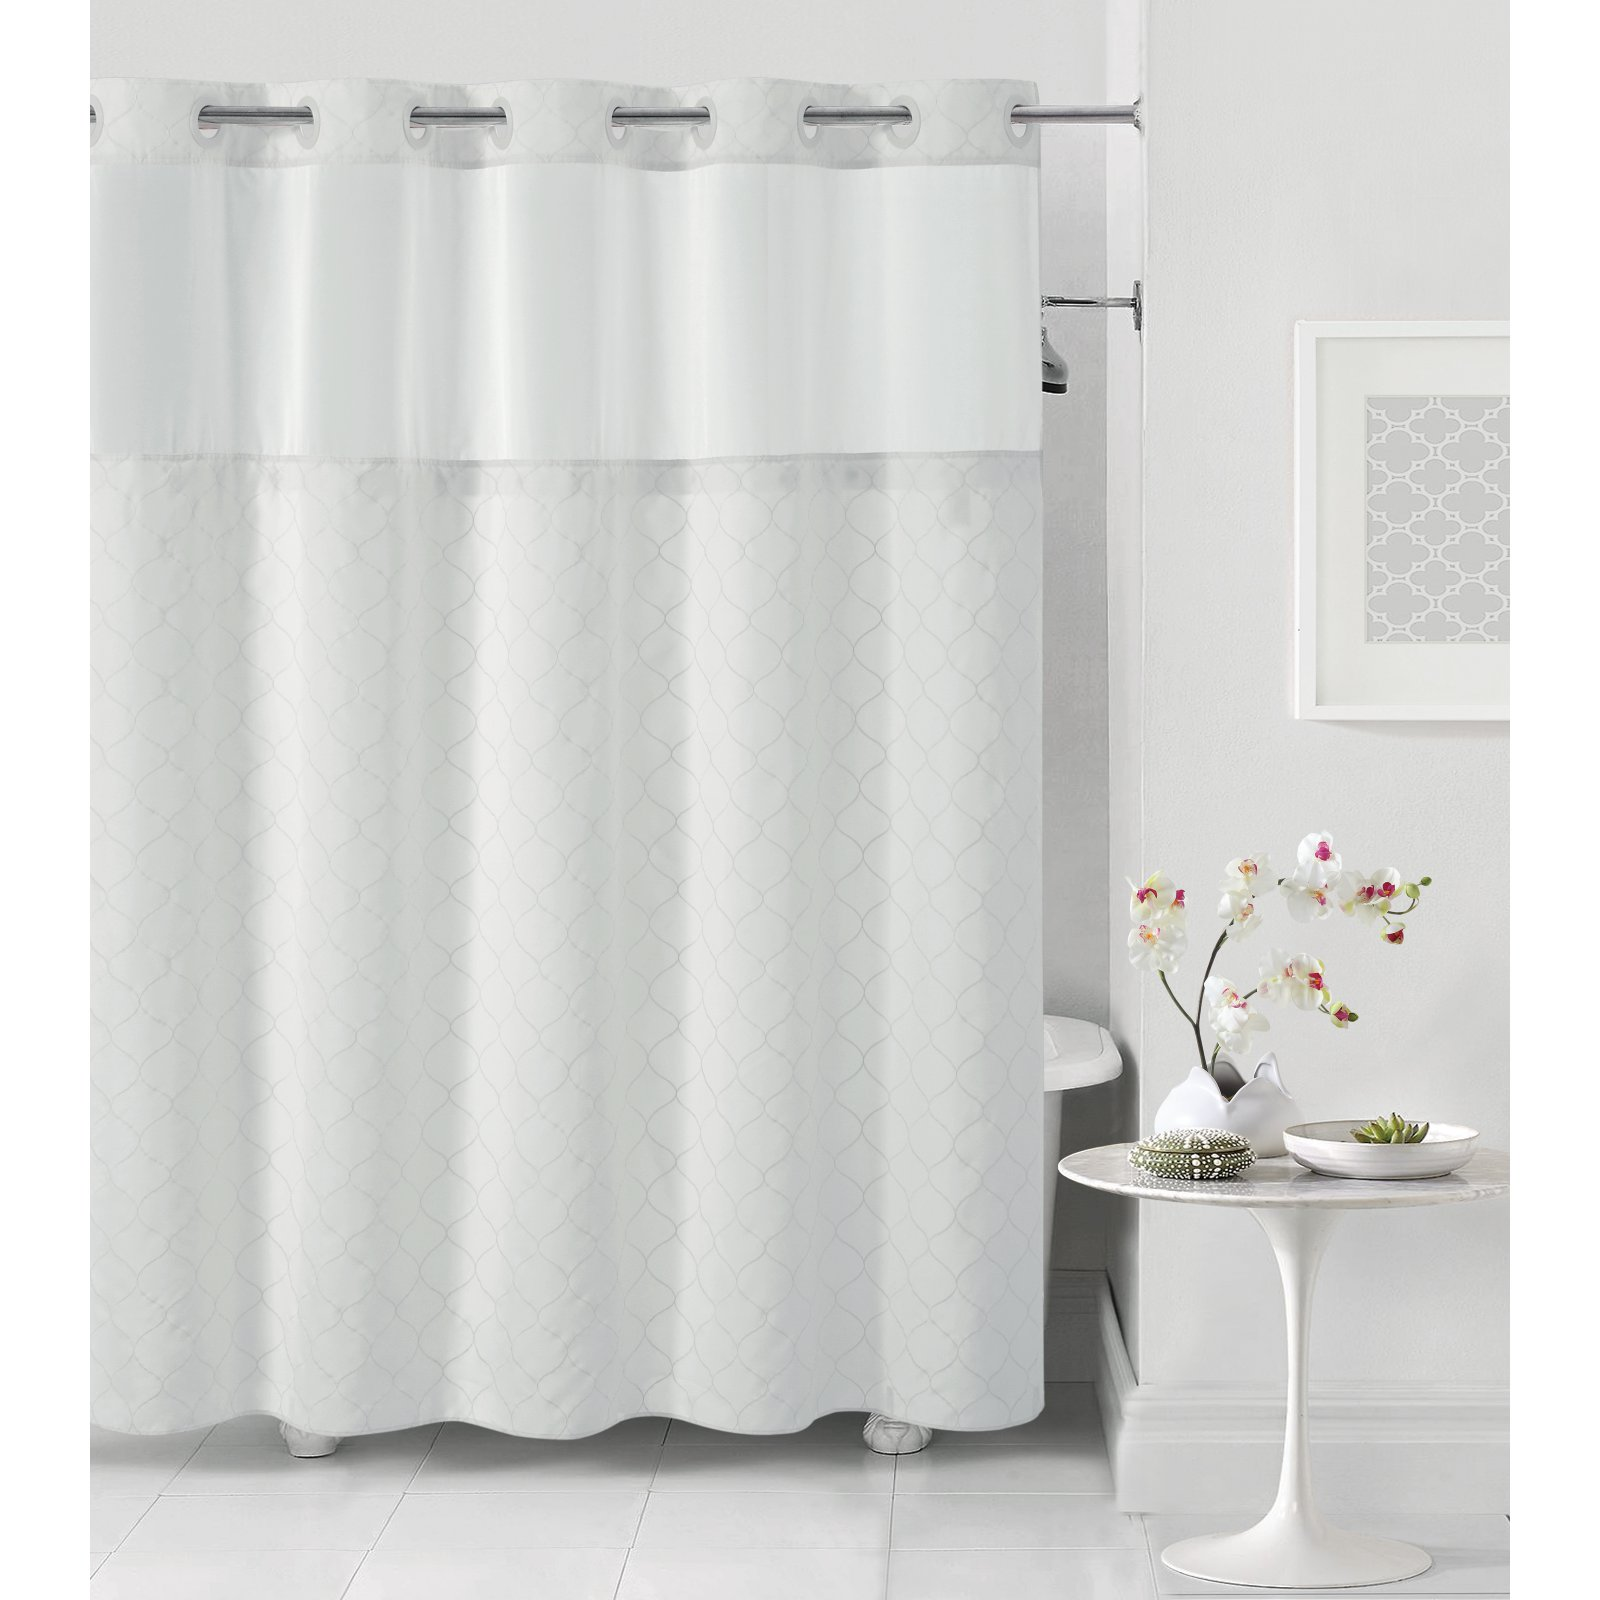 Hookless White Mosaic Polyester Shower Curtain by Hookless